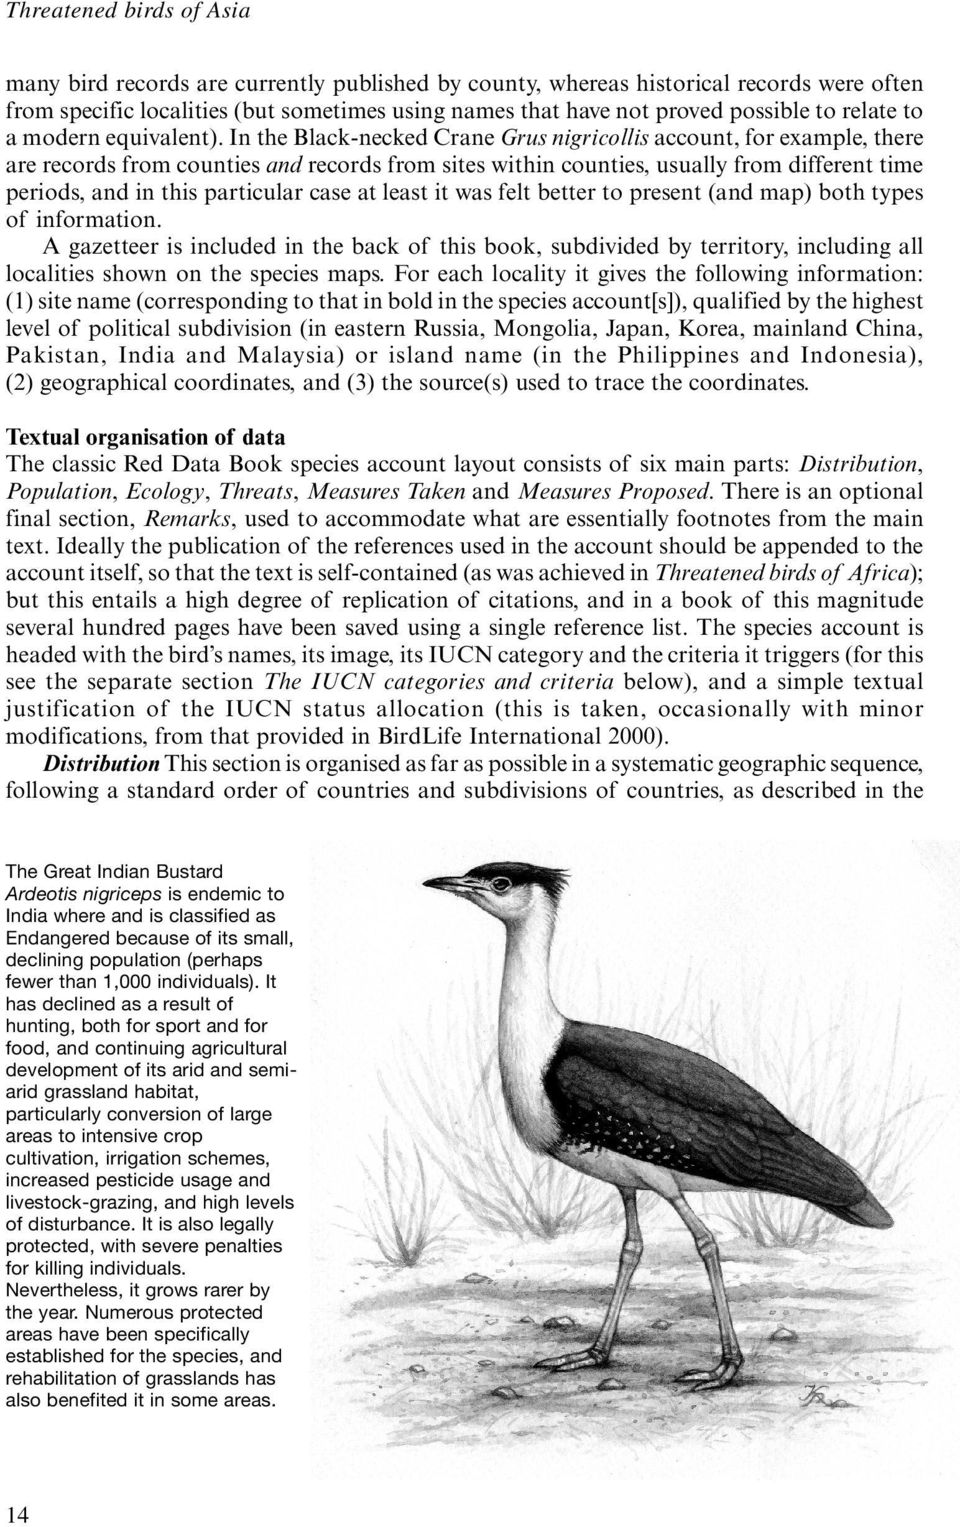 In the Black-necked Crane Grus nigricollis account, for example, there are records from counties and records from sites within counties, usually from different time periods, and in this particular